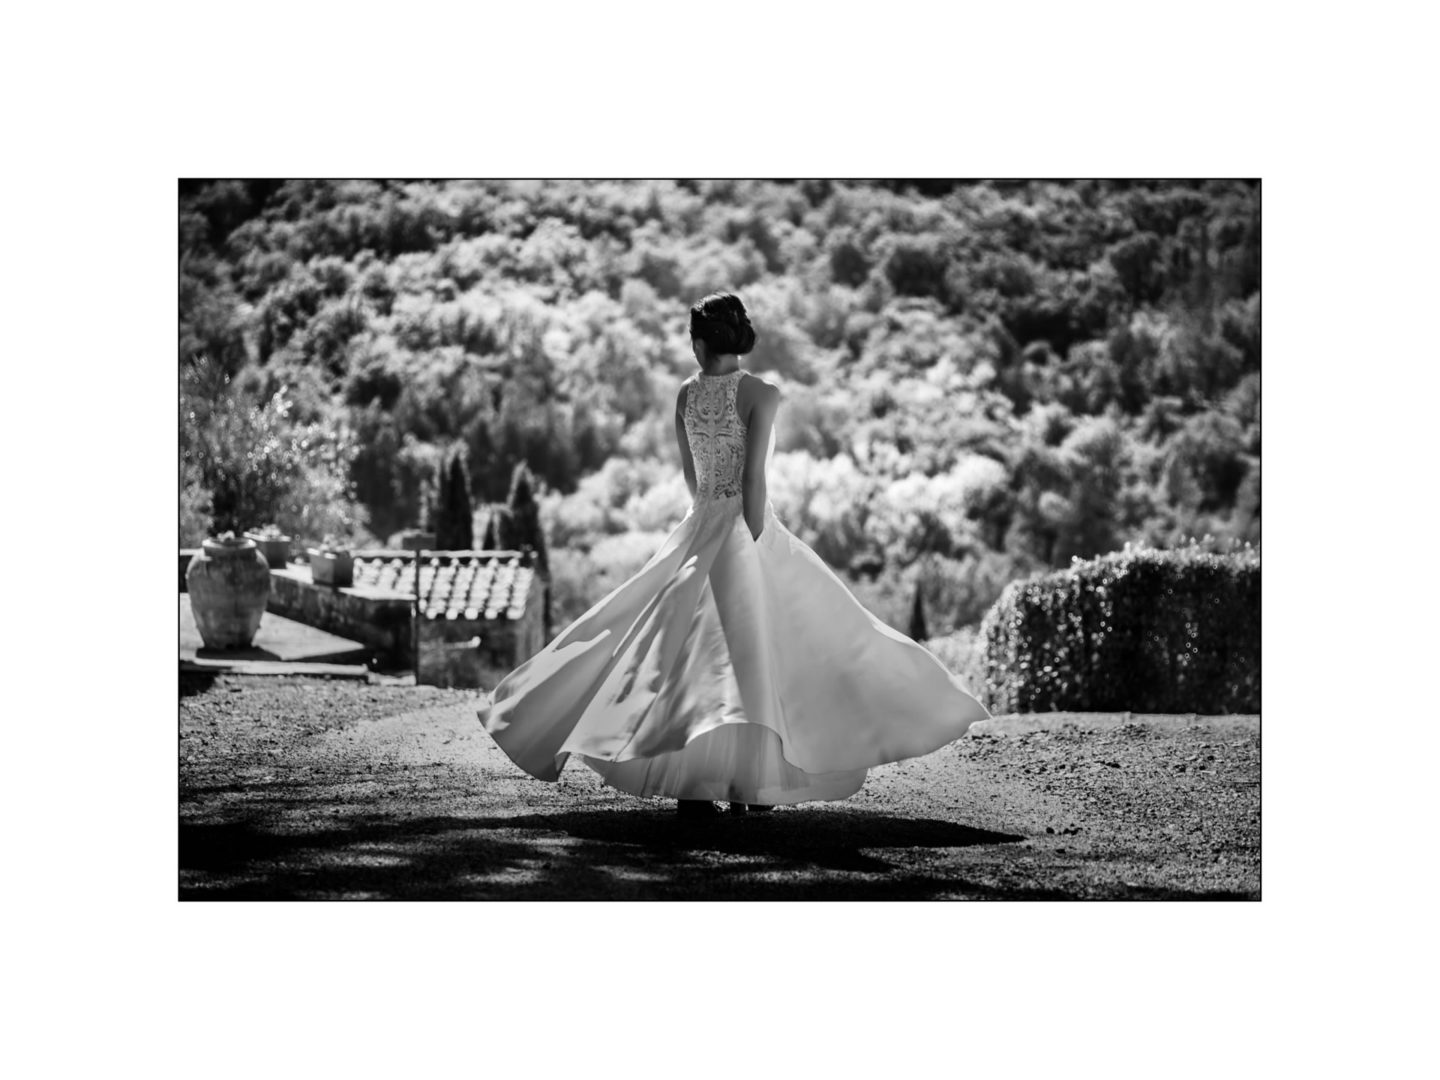 castello-di-meleto-david-bastianoni-photographer-00029 :: Black and white wedding_ Castello di Meleto :: Luxury wedding photography - 28 :: castello-di-meleto-david-bastianoni-photographer-00029